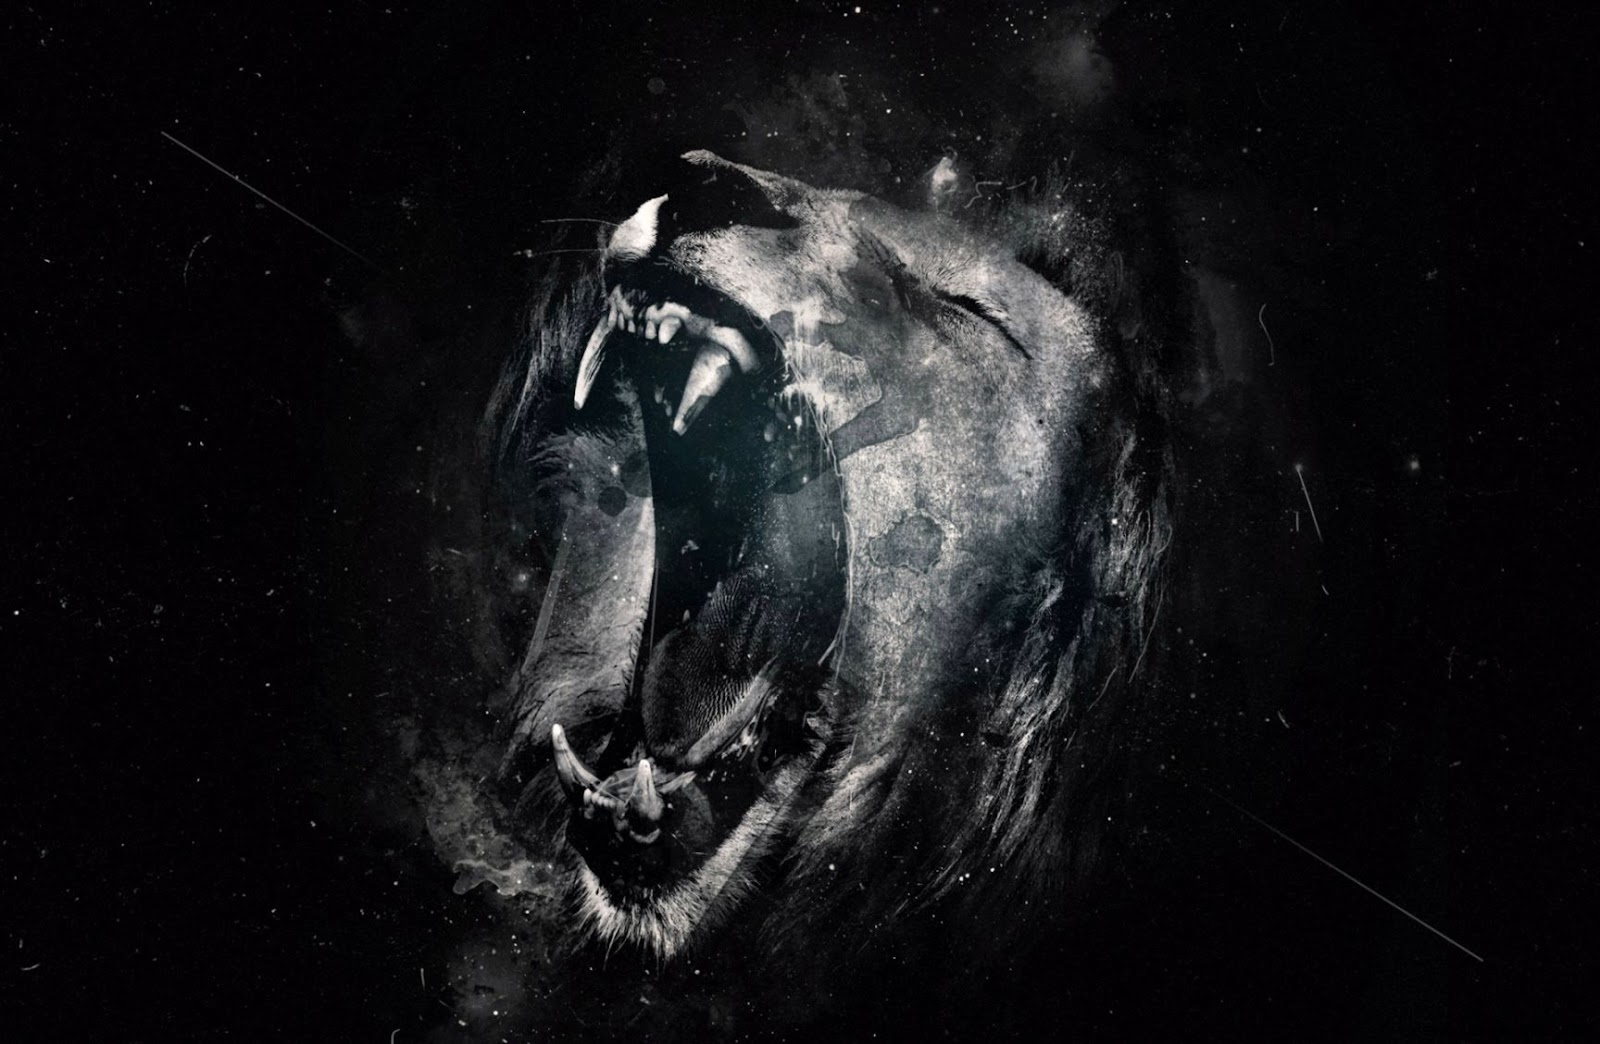 Wallpaper Hd 1080p Black And White Lion Wallpapers Quality